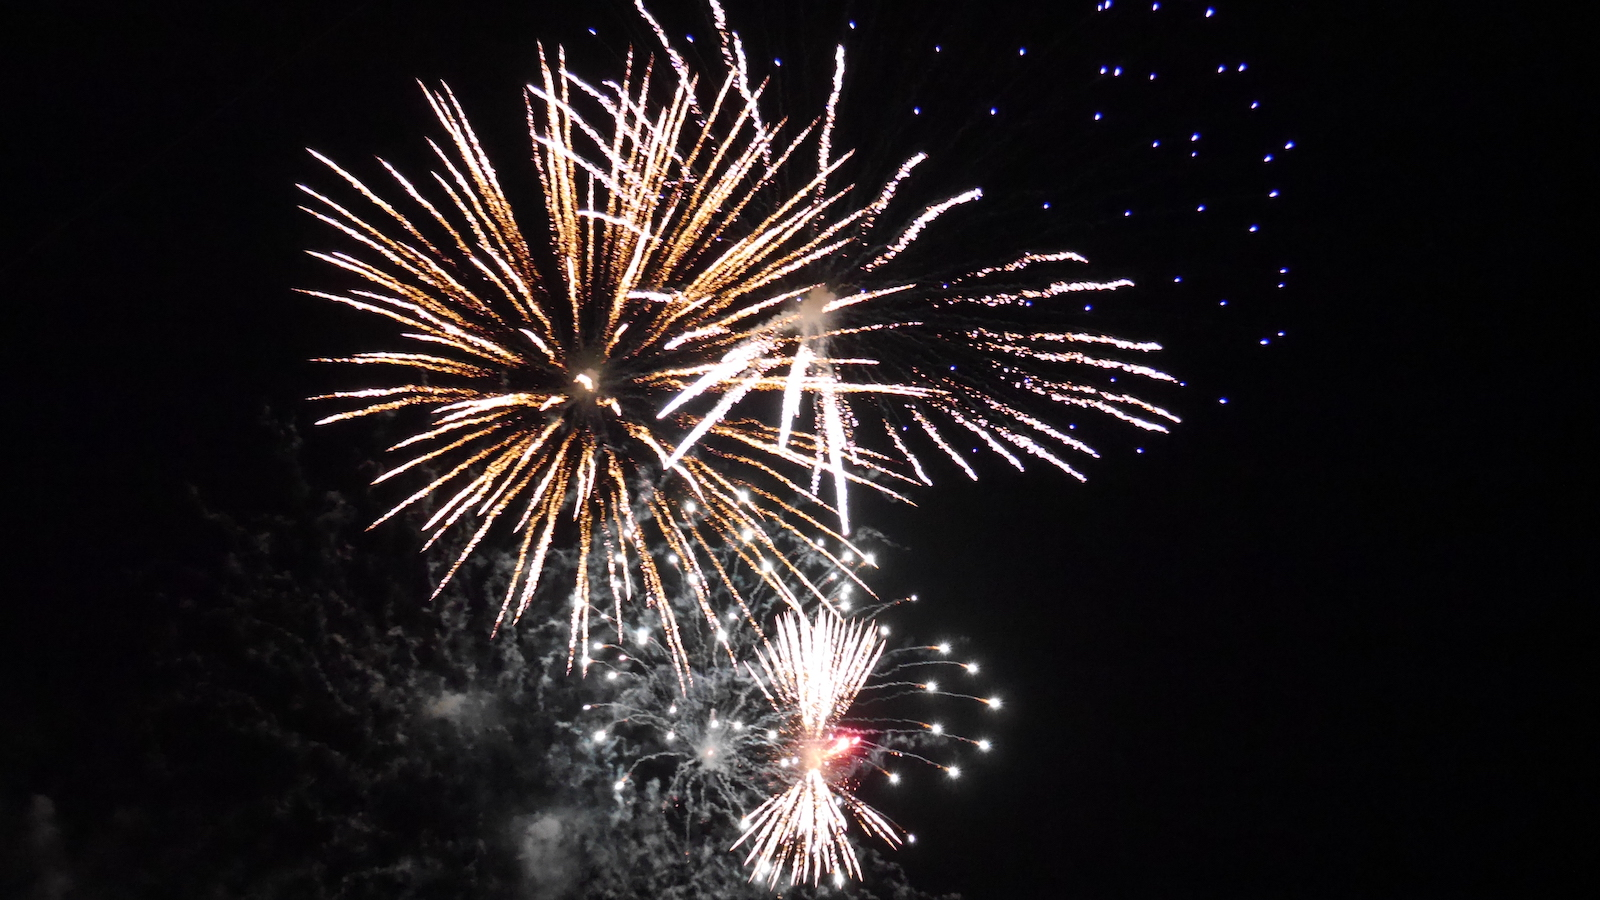 Large fireworks on a night sky; lots of white sprays in different directions, with some yellow and some red. Also some smoke and blue sparks.